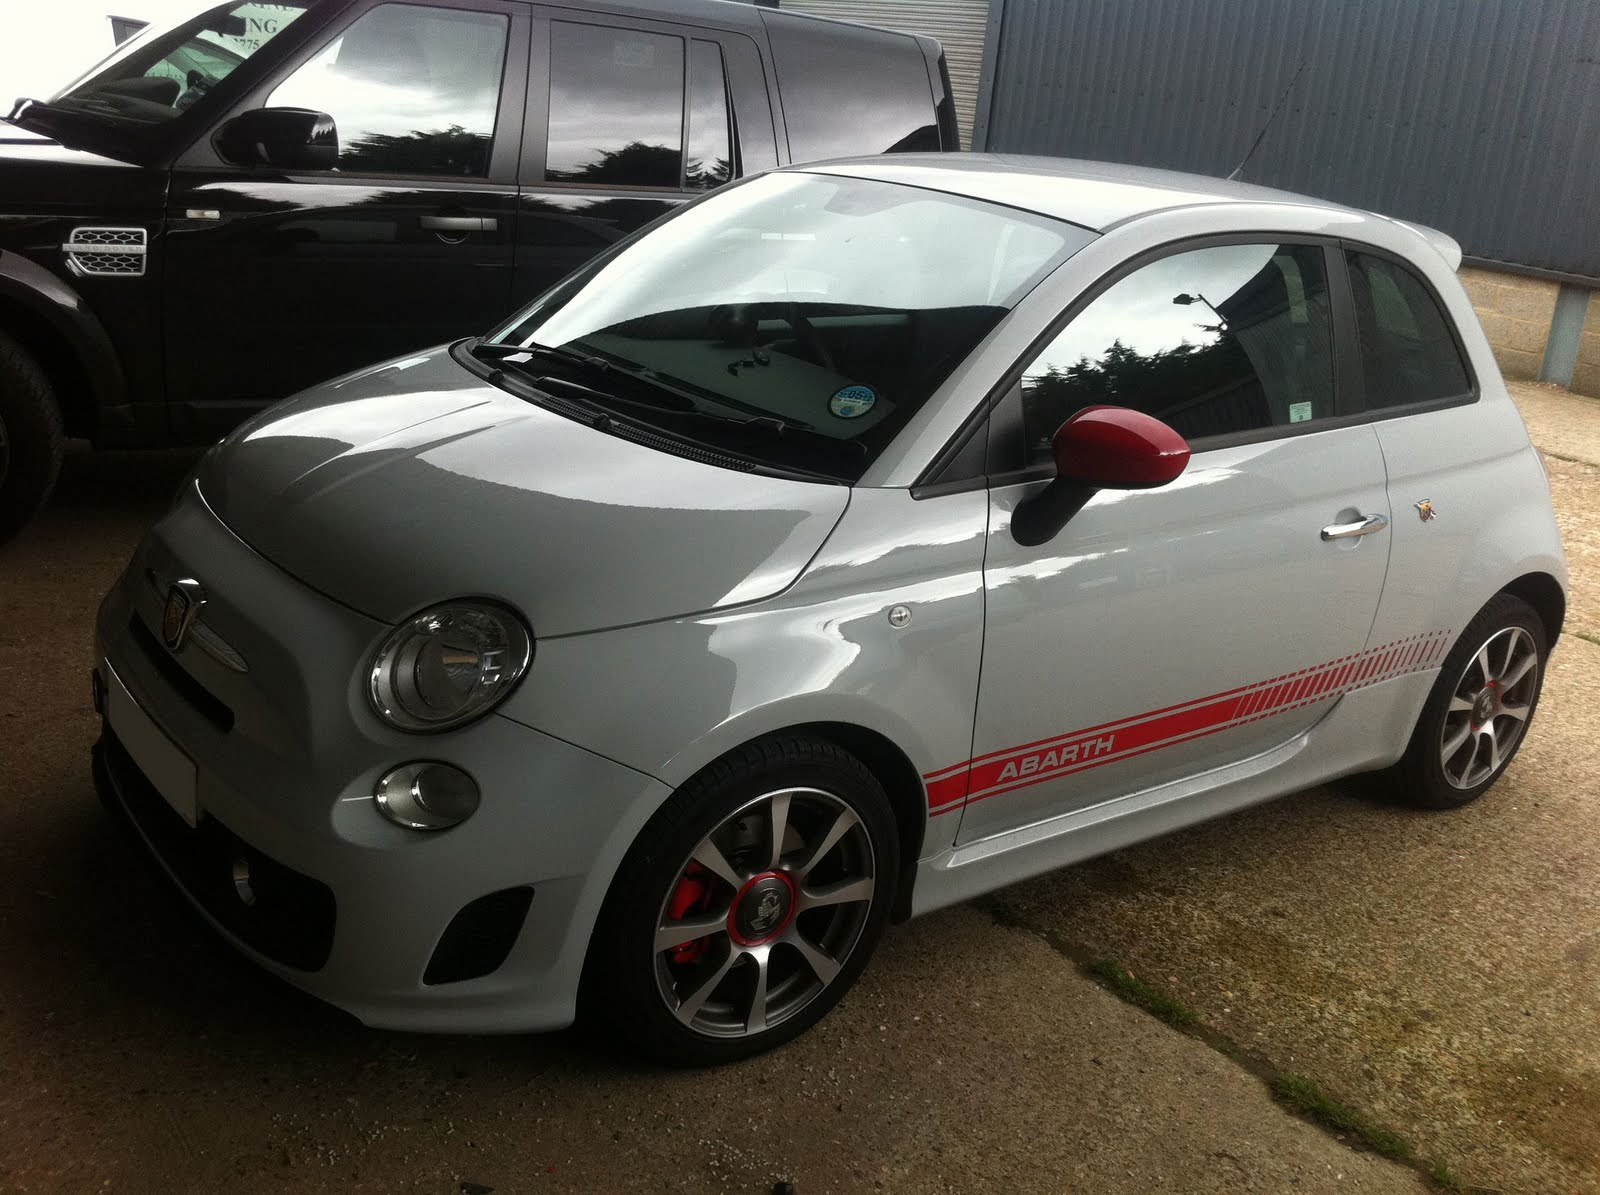 jf automotive fiat 500 abarth remapping tuning. Black Bedroom Furniture Sets. Home Design Ideas